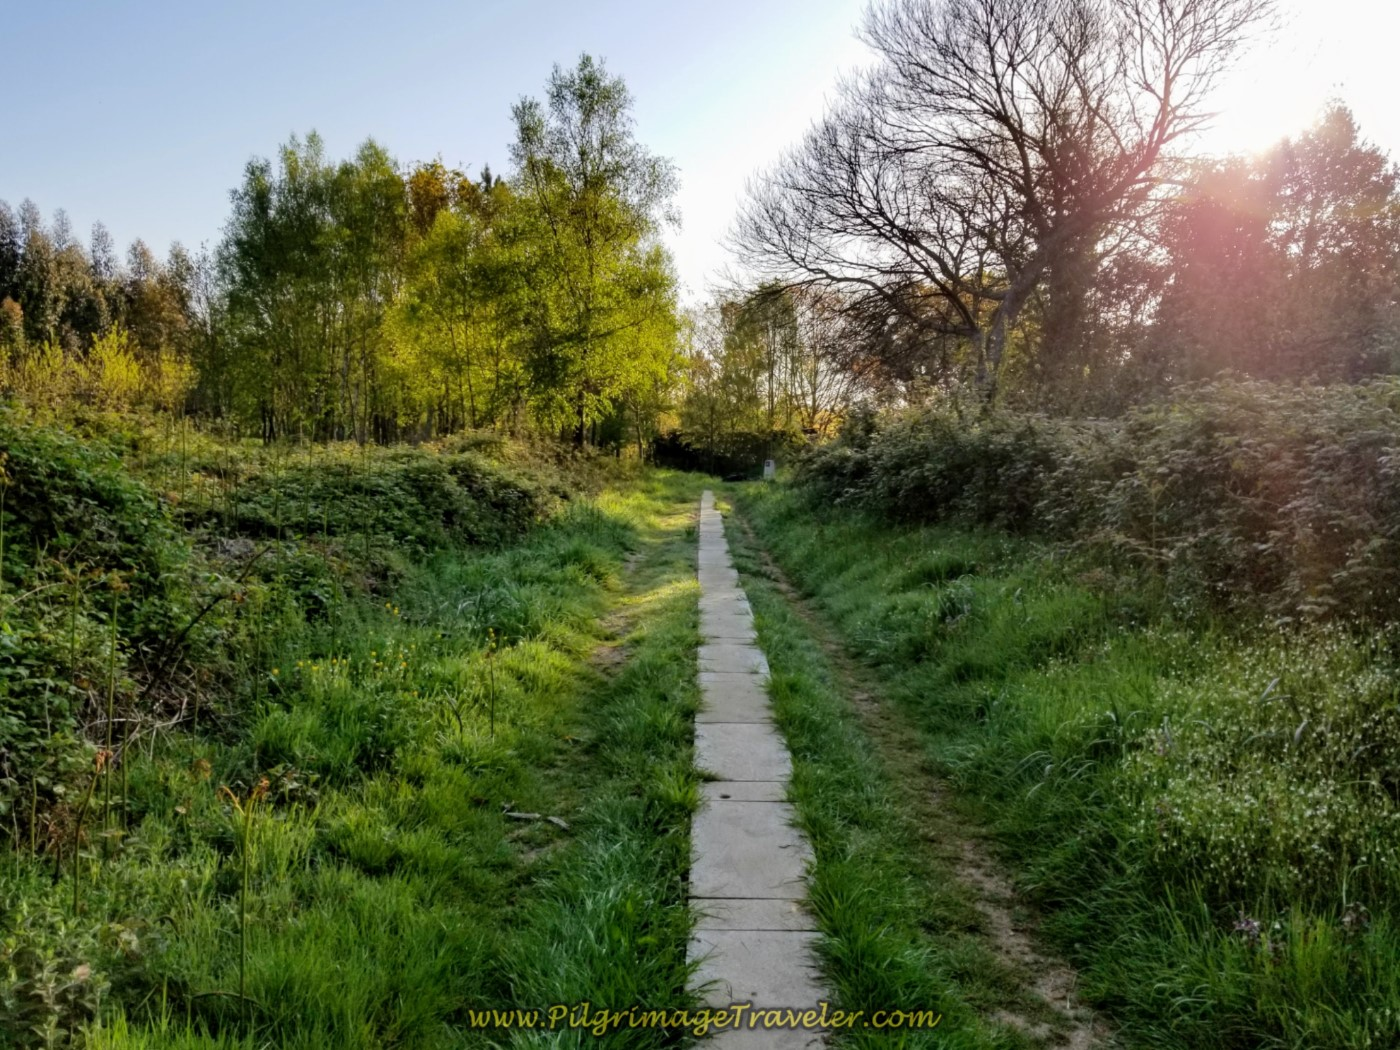 Lane Turns to Concrete Path on day seven of the Camino Inglés